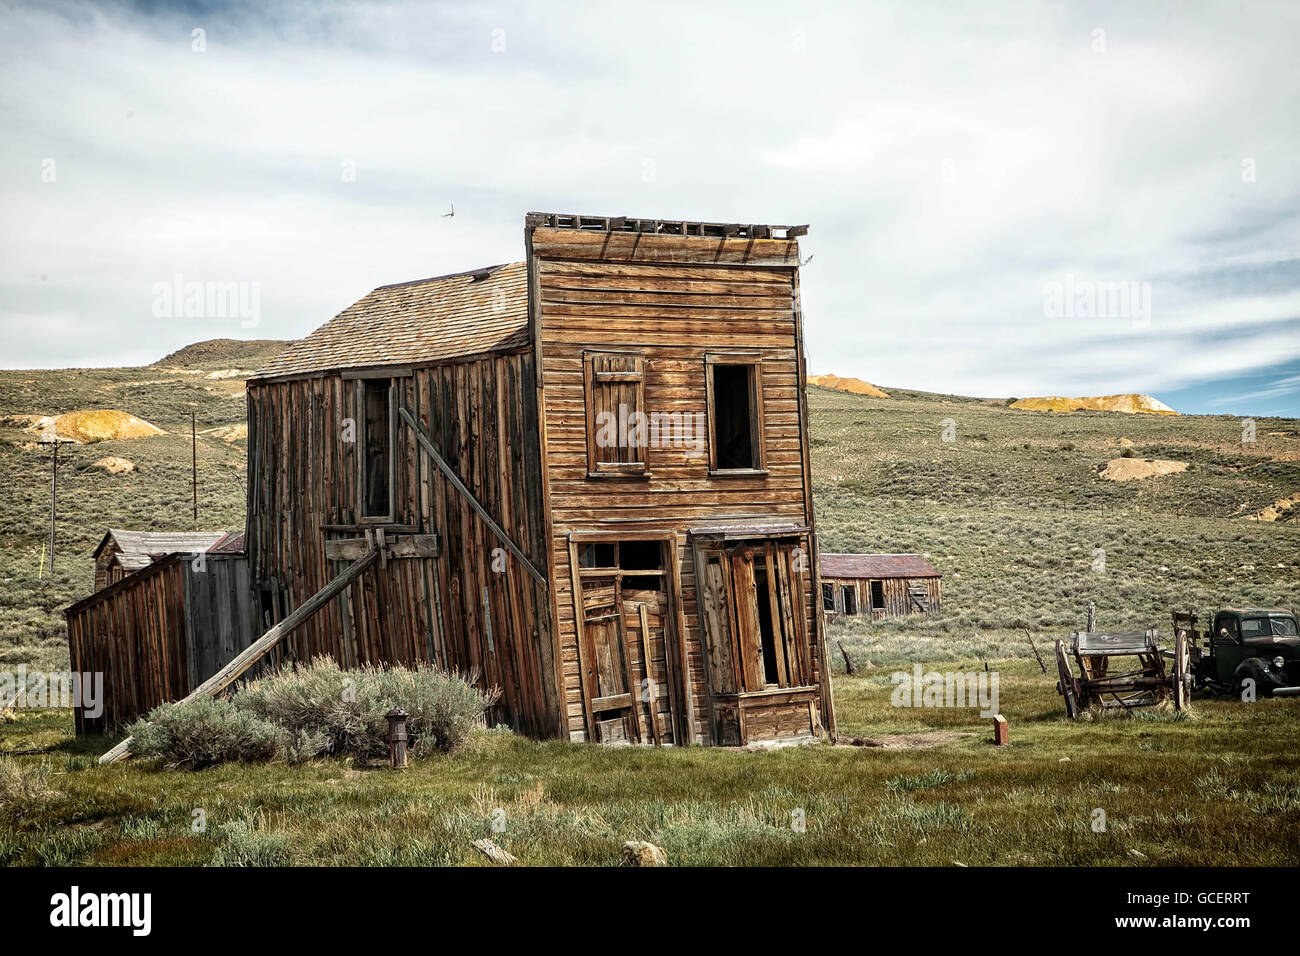 Abandoned buildings in the mining ghost two of Bodie, California. - Stock Image